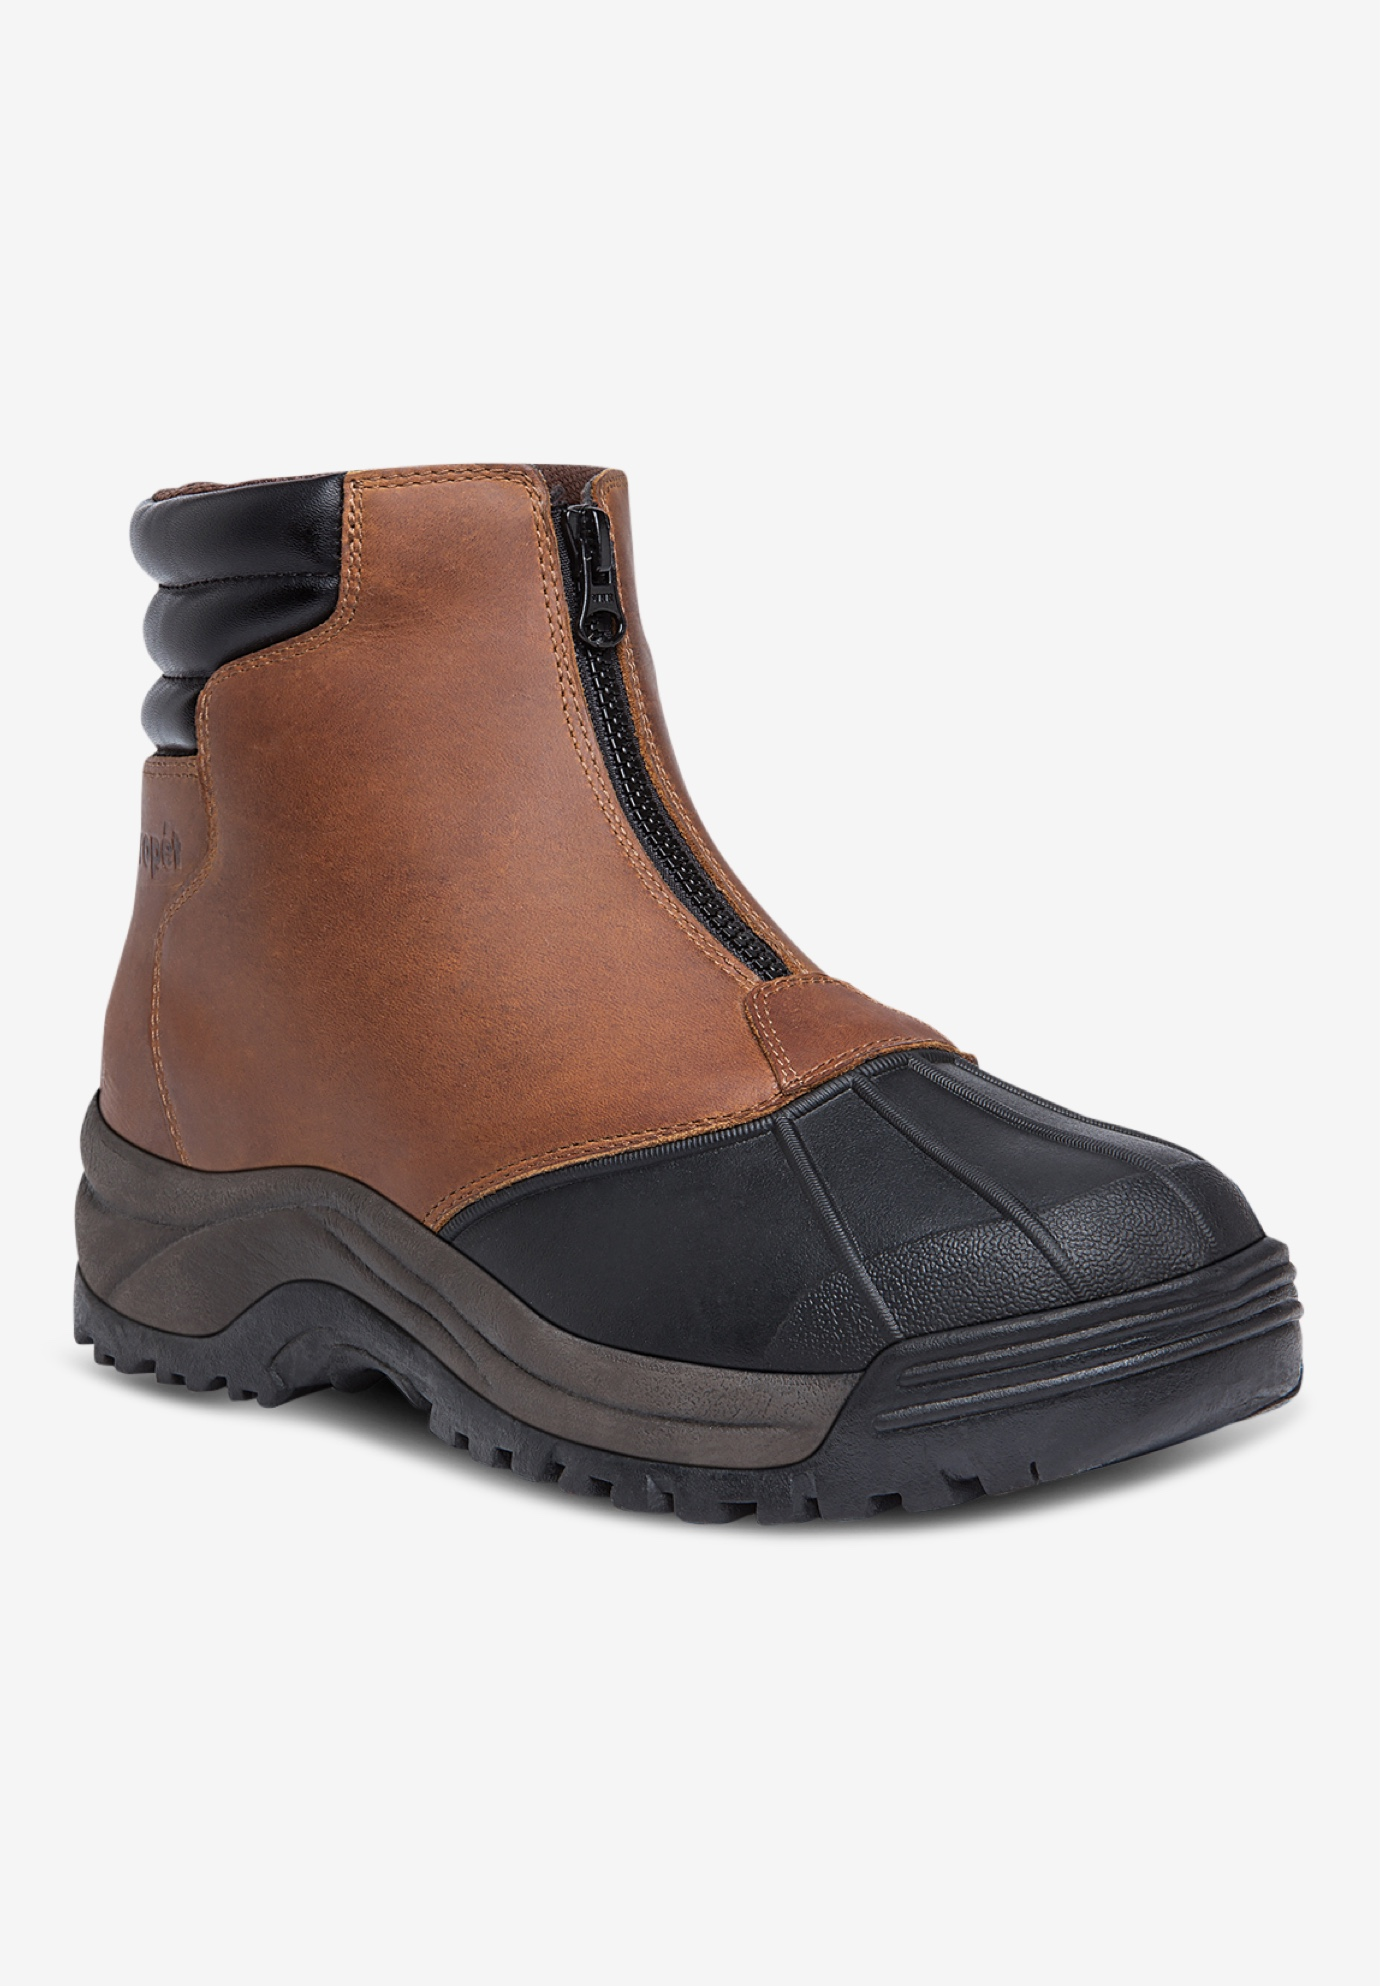 Propét® Zip Hiking Boots,